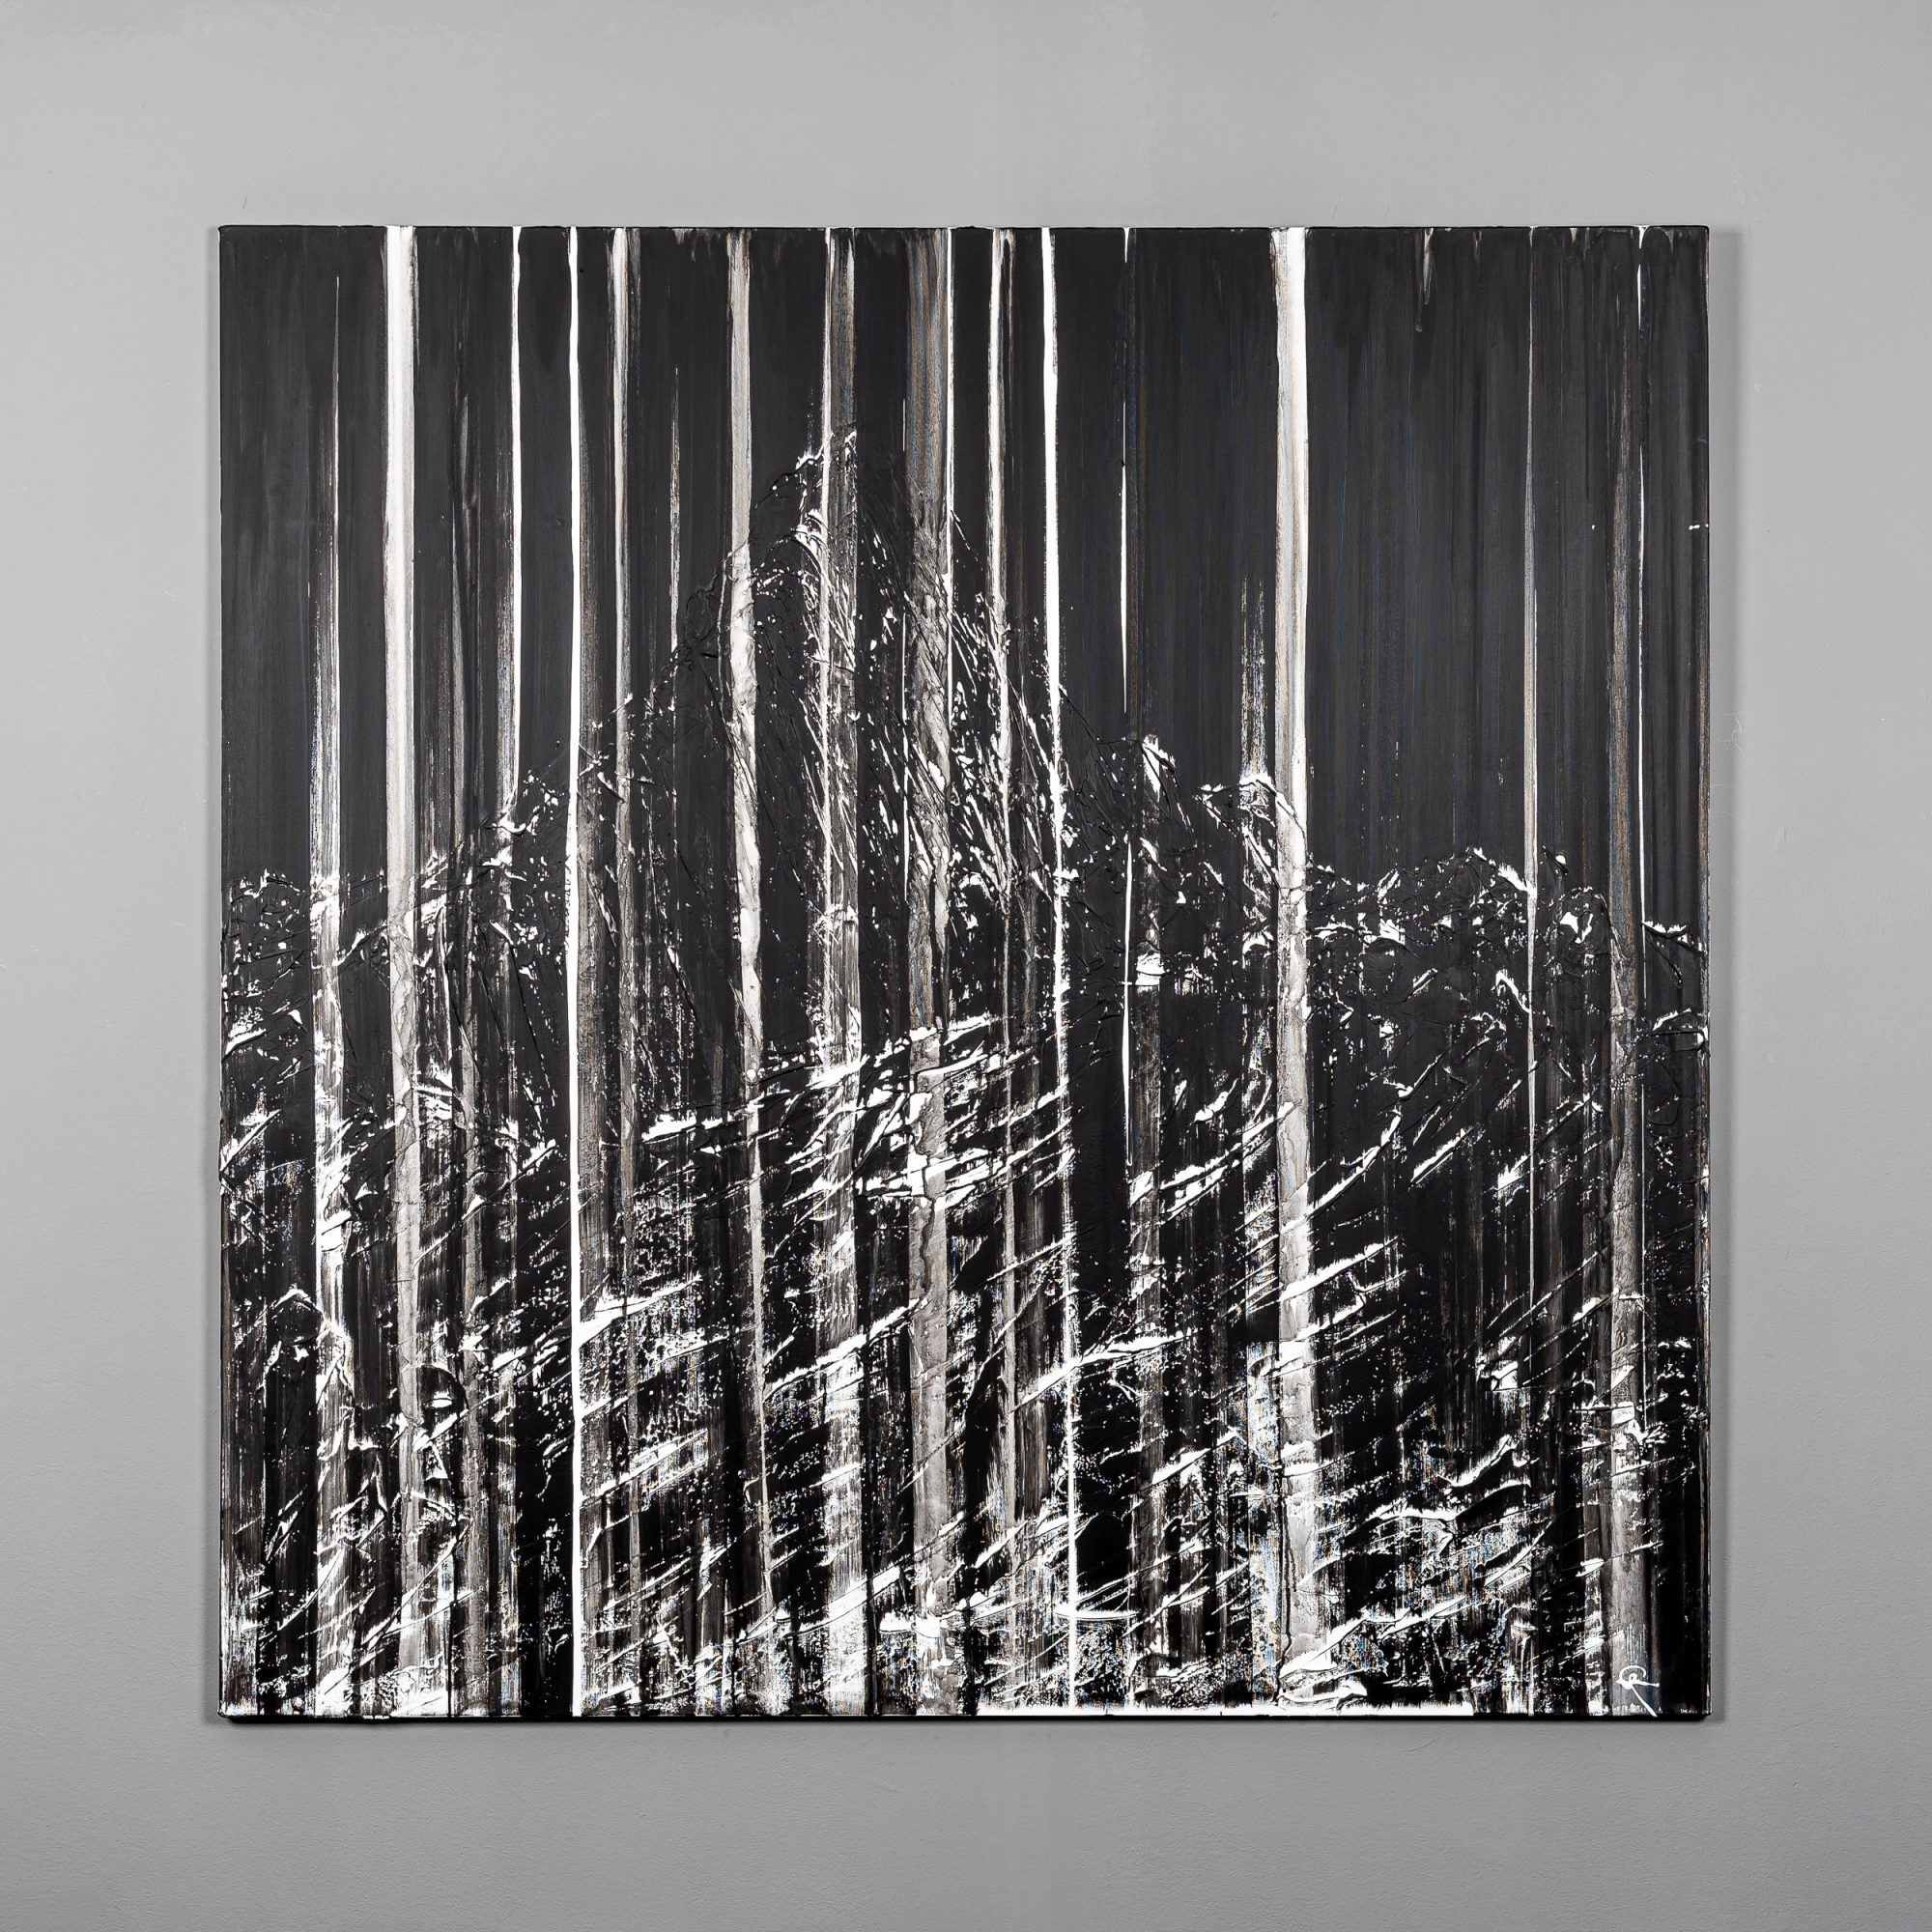 Mountain Striations by Paul Kenton, UK Contemporary artist, an abstract mountainscape original oil painting from his Seascapes and Mountainscapes Art Collection